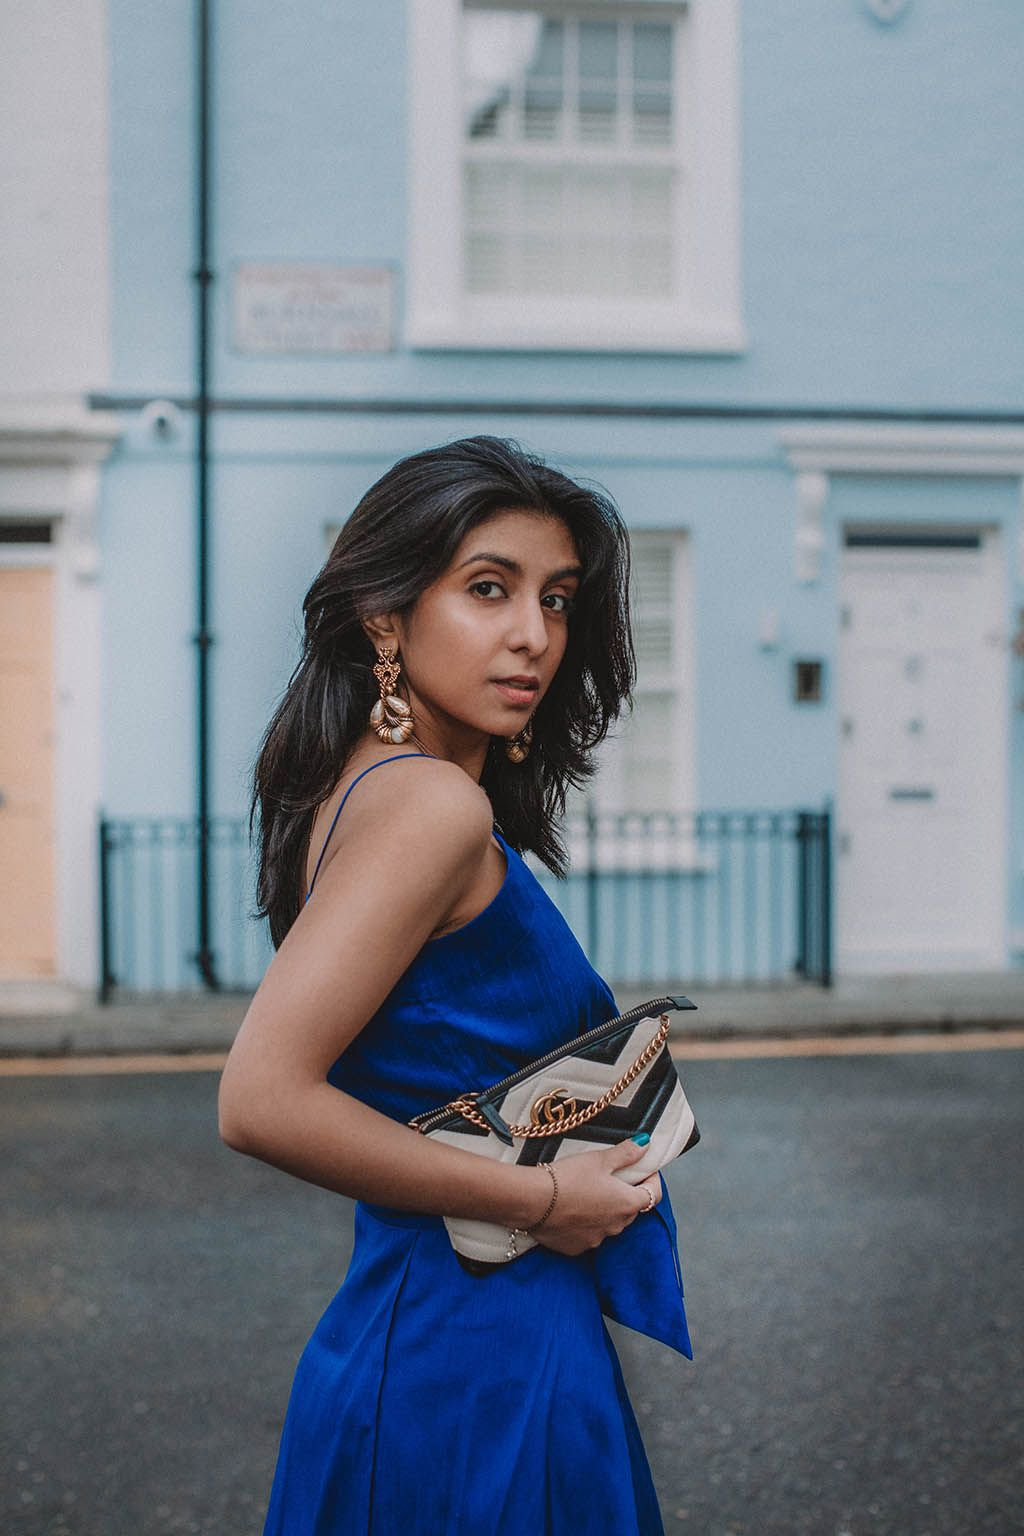 7c8824ee6b0fdf Fashion blogger Shloka Narang of The Silk Sneaker shares her style trick to  finding the perfect spring party outfit as she shares what she wore to her  ...